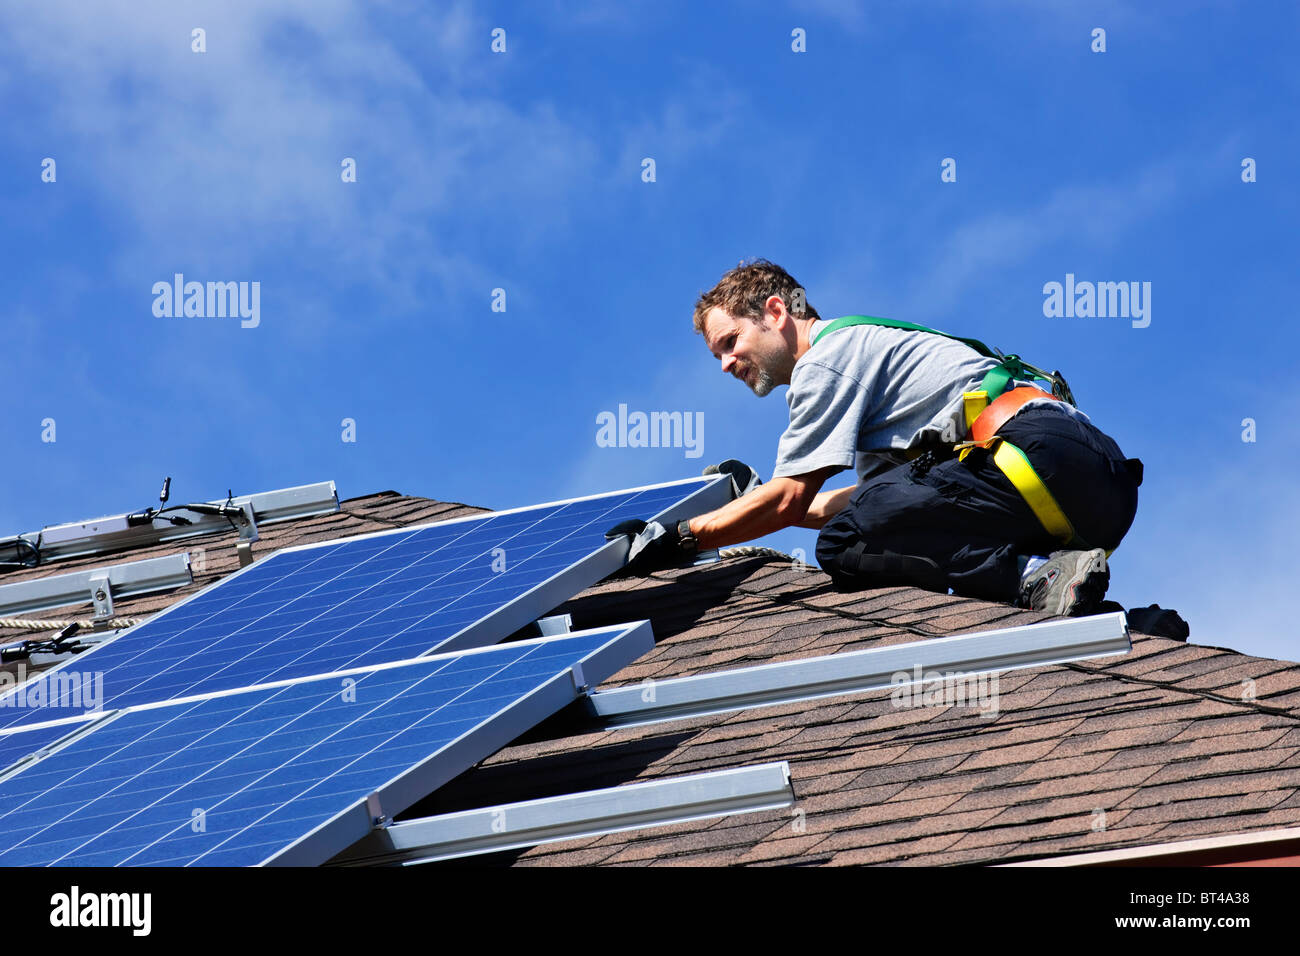 Man Solar Panel Stock Photos Images Alamy With Corrugated Thin Film Cells On Wiring Panels In Installing Alternative Energy Photovoltaic Roof Image